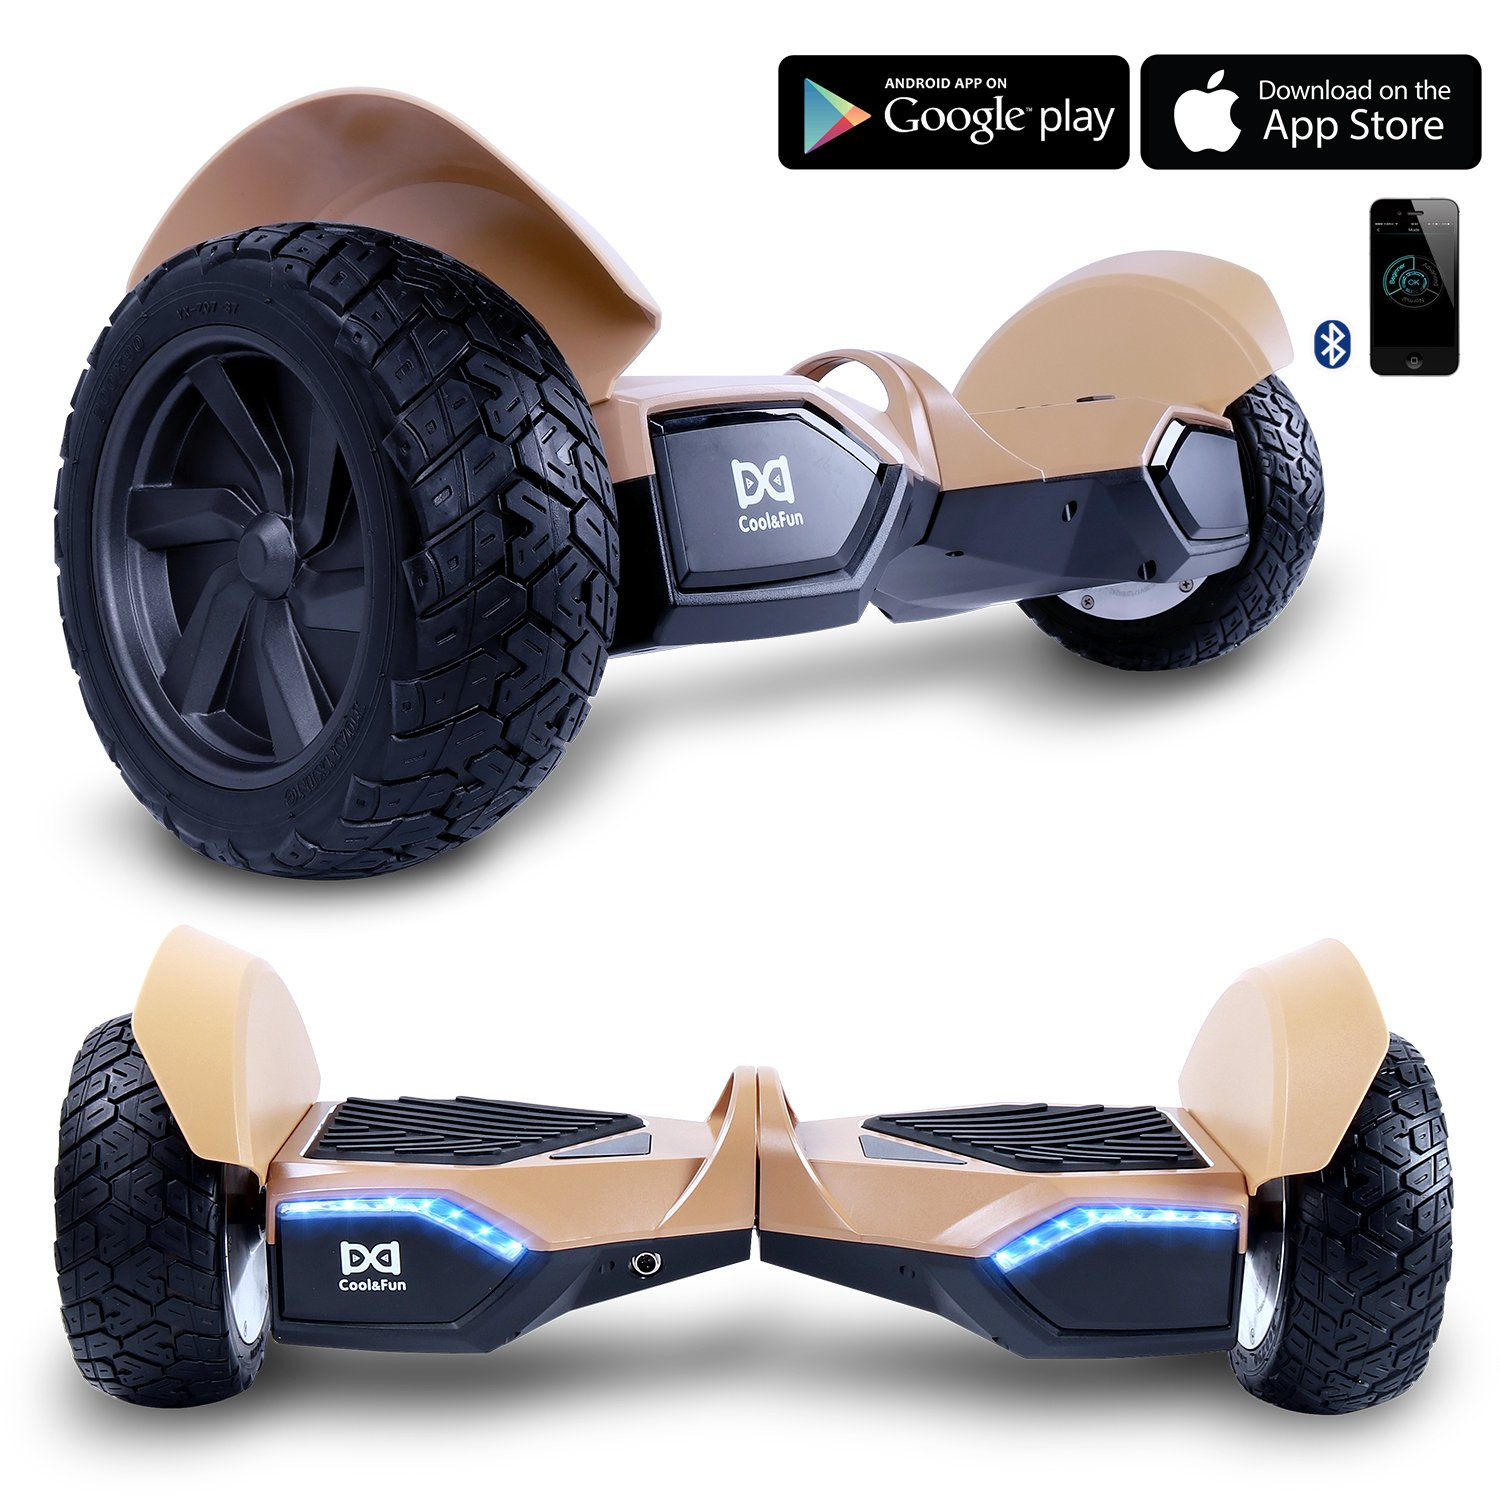 Cool&Fun W8S Two Wheel Self Balance Scooter Off-Road Hoverboard Safety Certified UL 2272 Bluetooth Speakers 8.5 Inch All Terrain Road Condition (Gold)